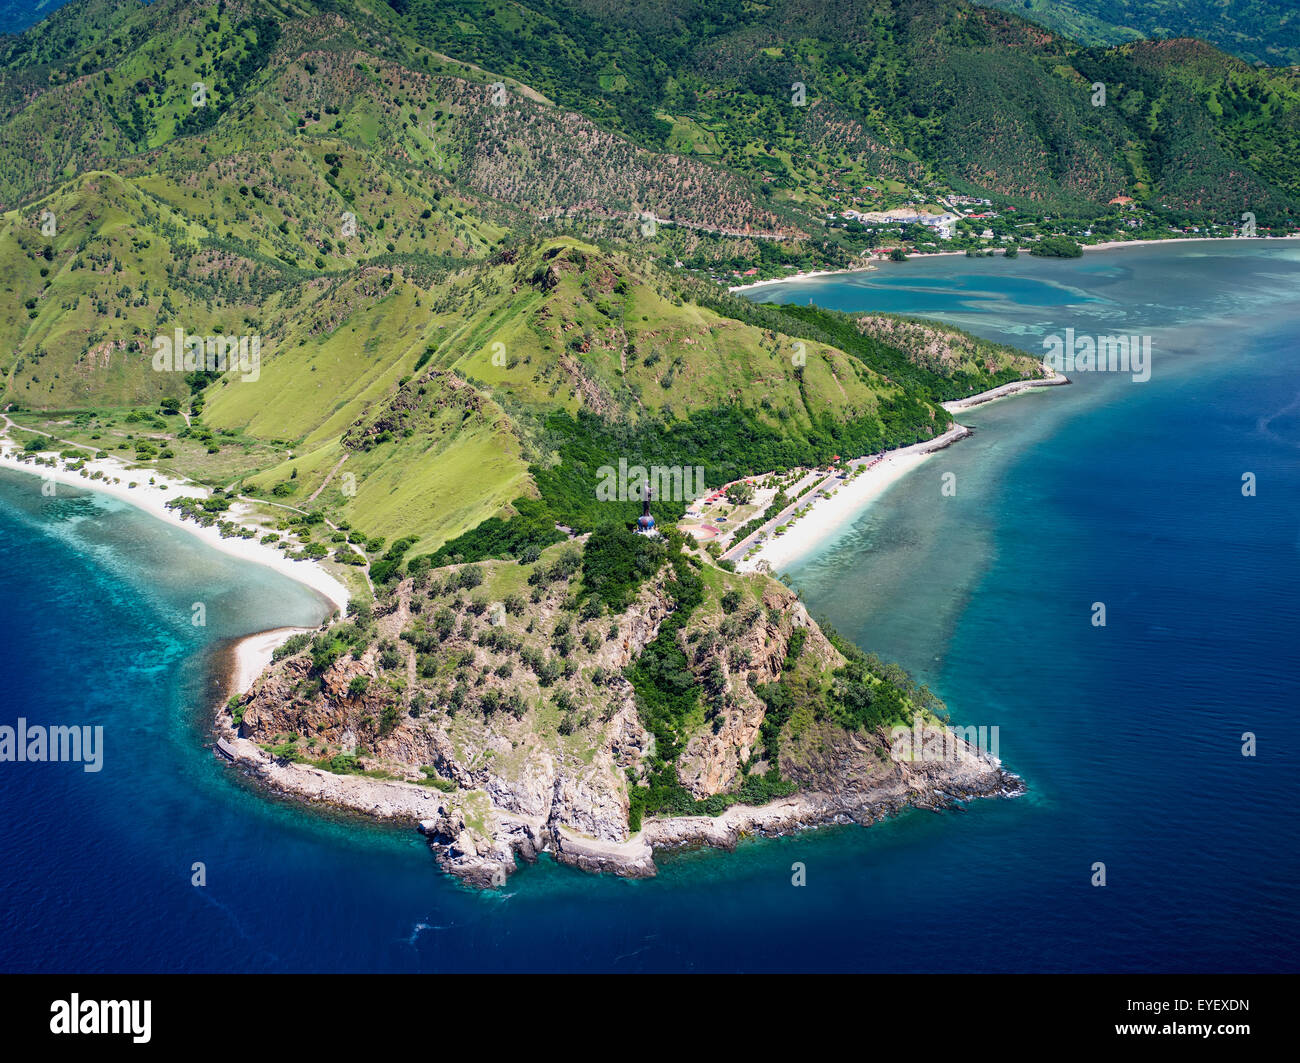 the issue of the people of the island of east timor The kayin (karen), a people living in the proruption of burma, wish to create an autonomous area within burma true the island of ________ is the indonesian island that borders the strait of malacca.